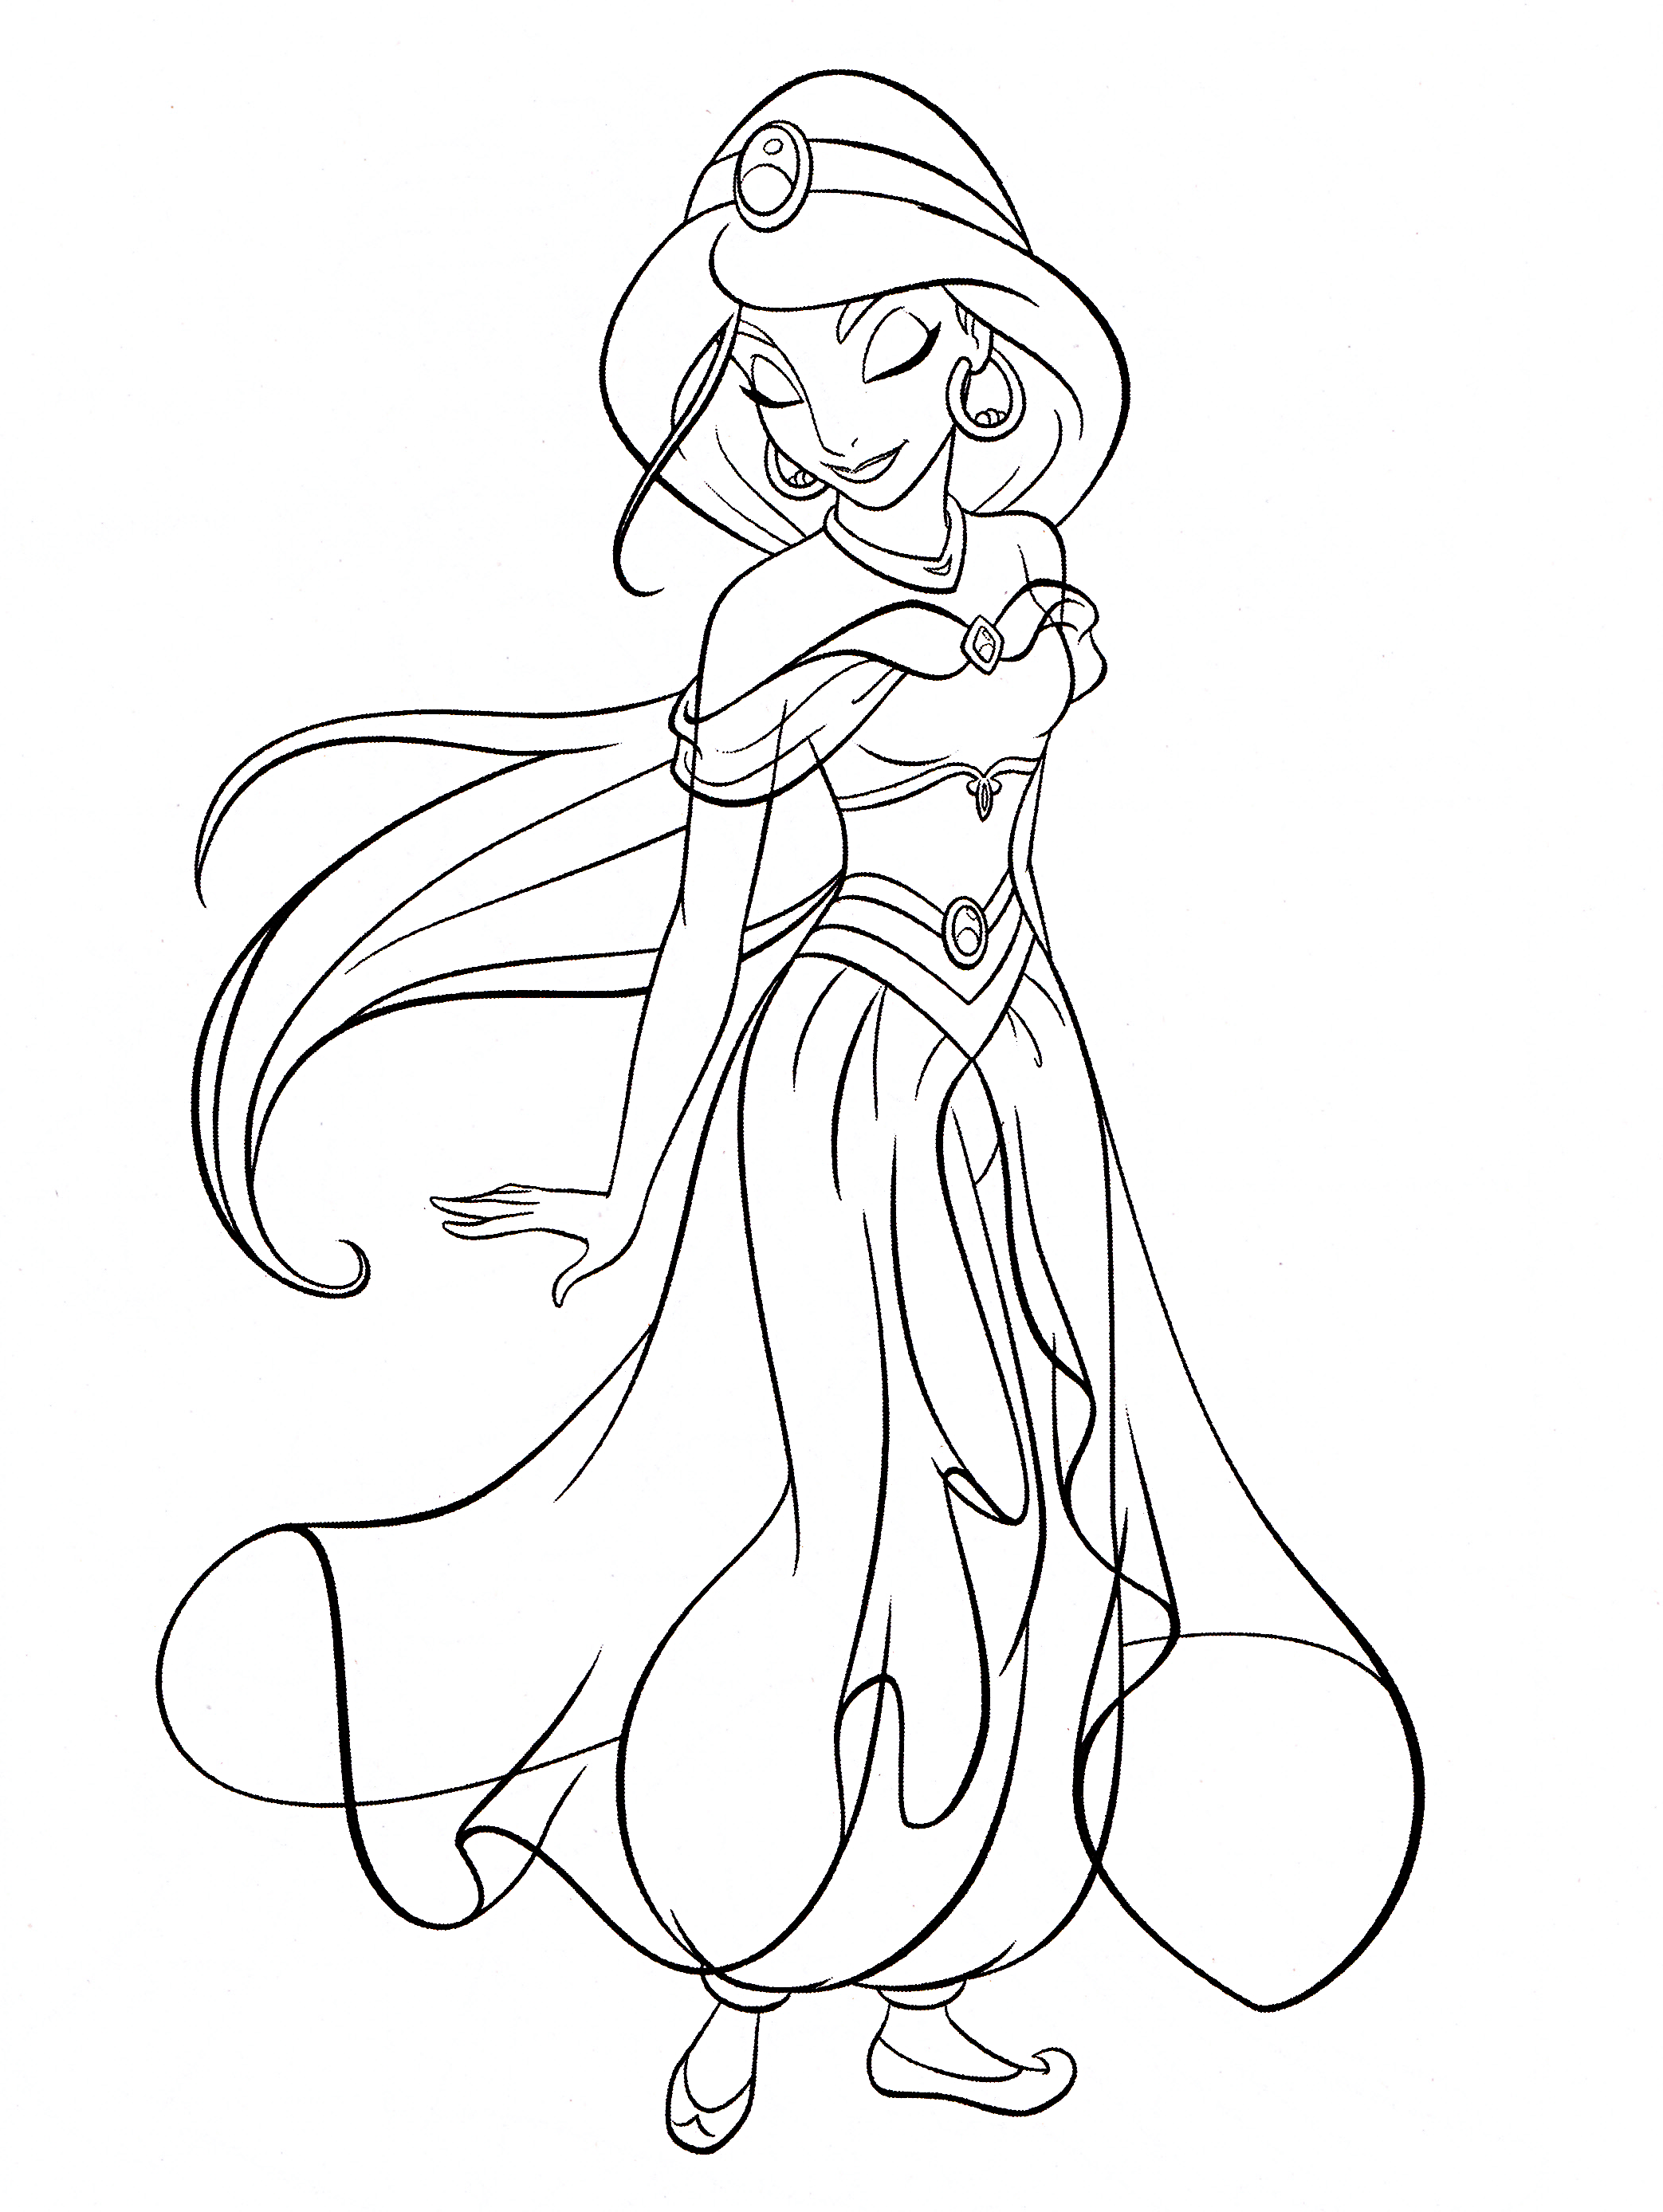 Kleurplaten Jasmine.Walt Disney Coloring Pages Princess Jasmine Walt Disney